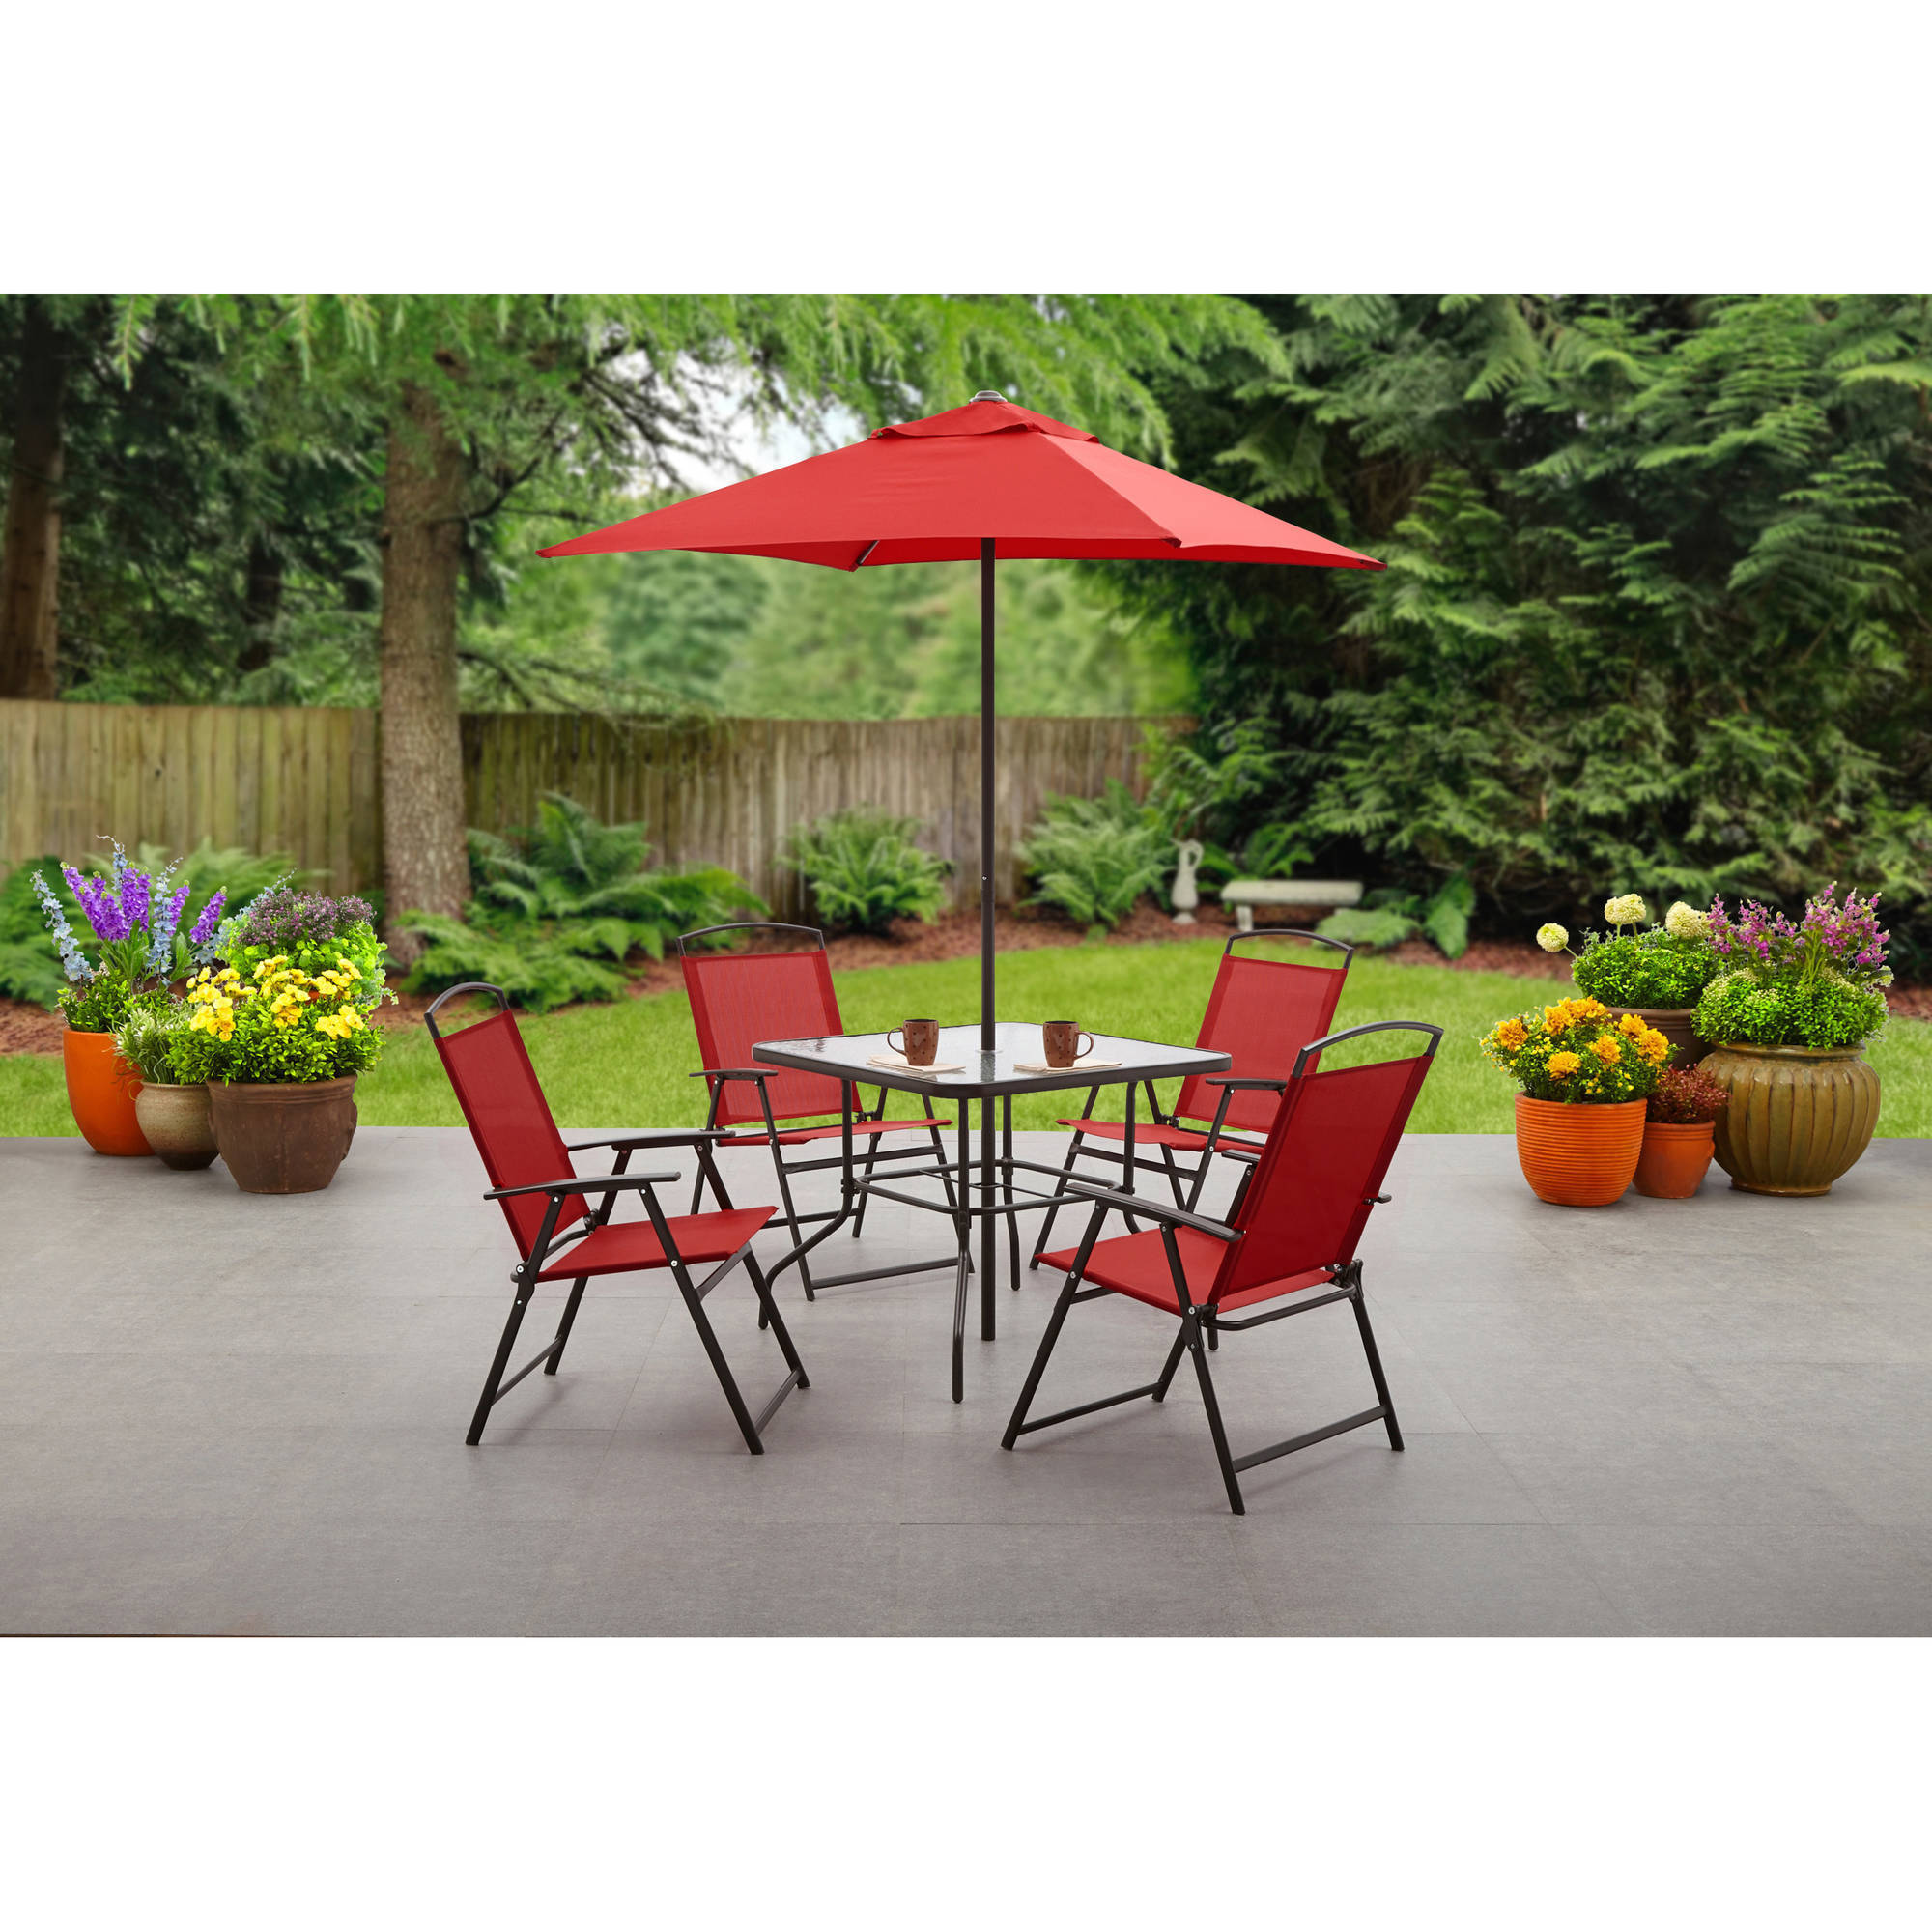 Mainstays Albany Lane 6 Piece Folding Dining Set, Multiple Colors